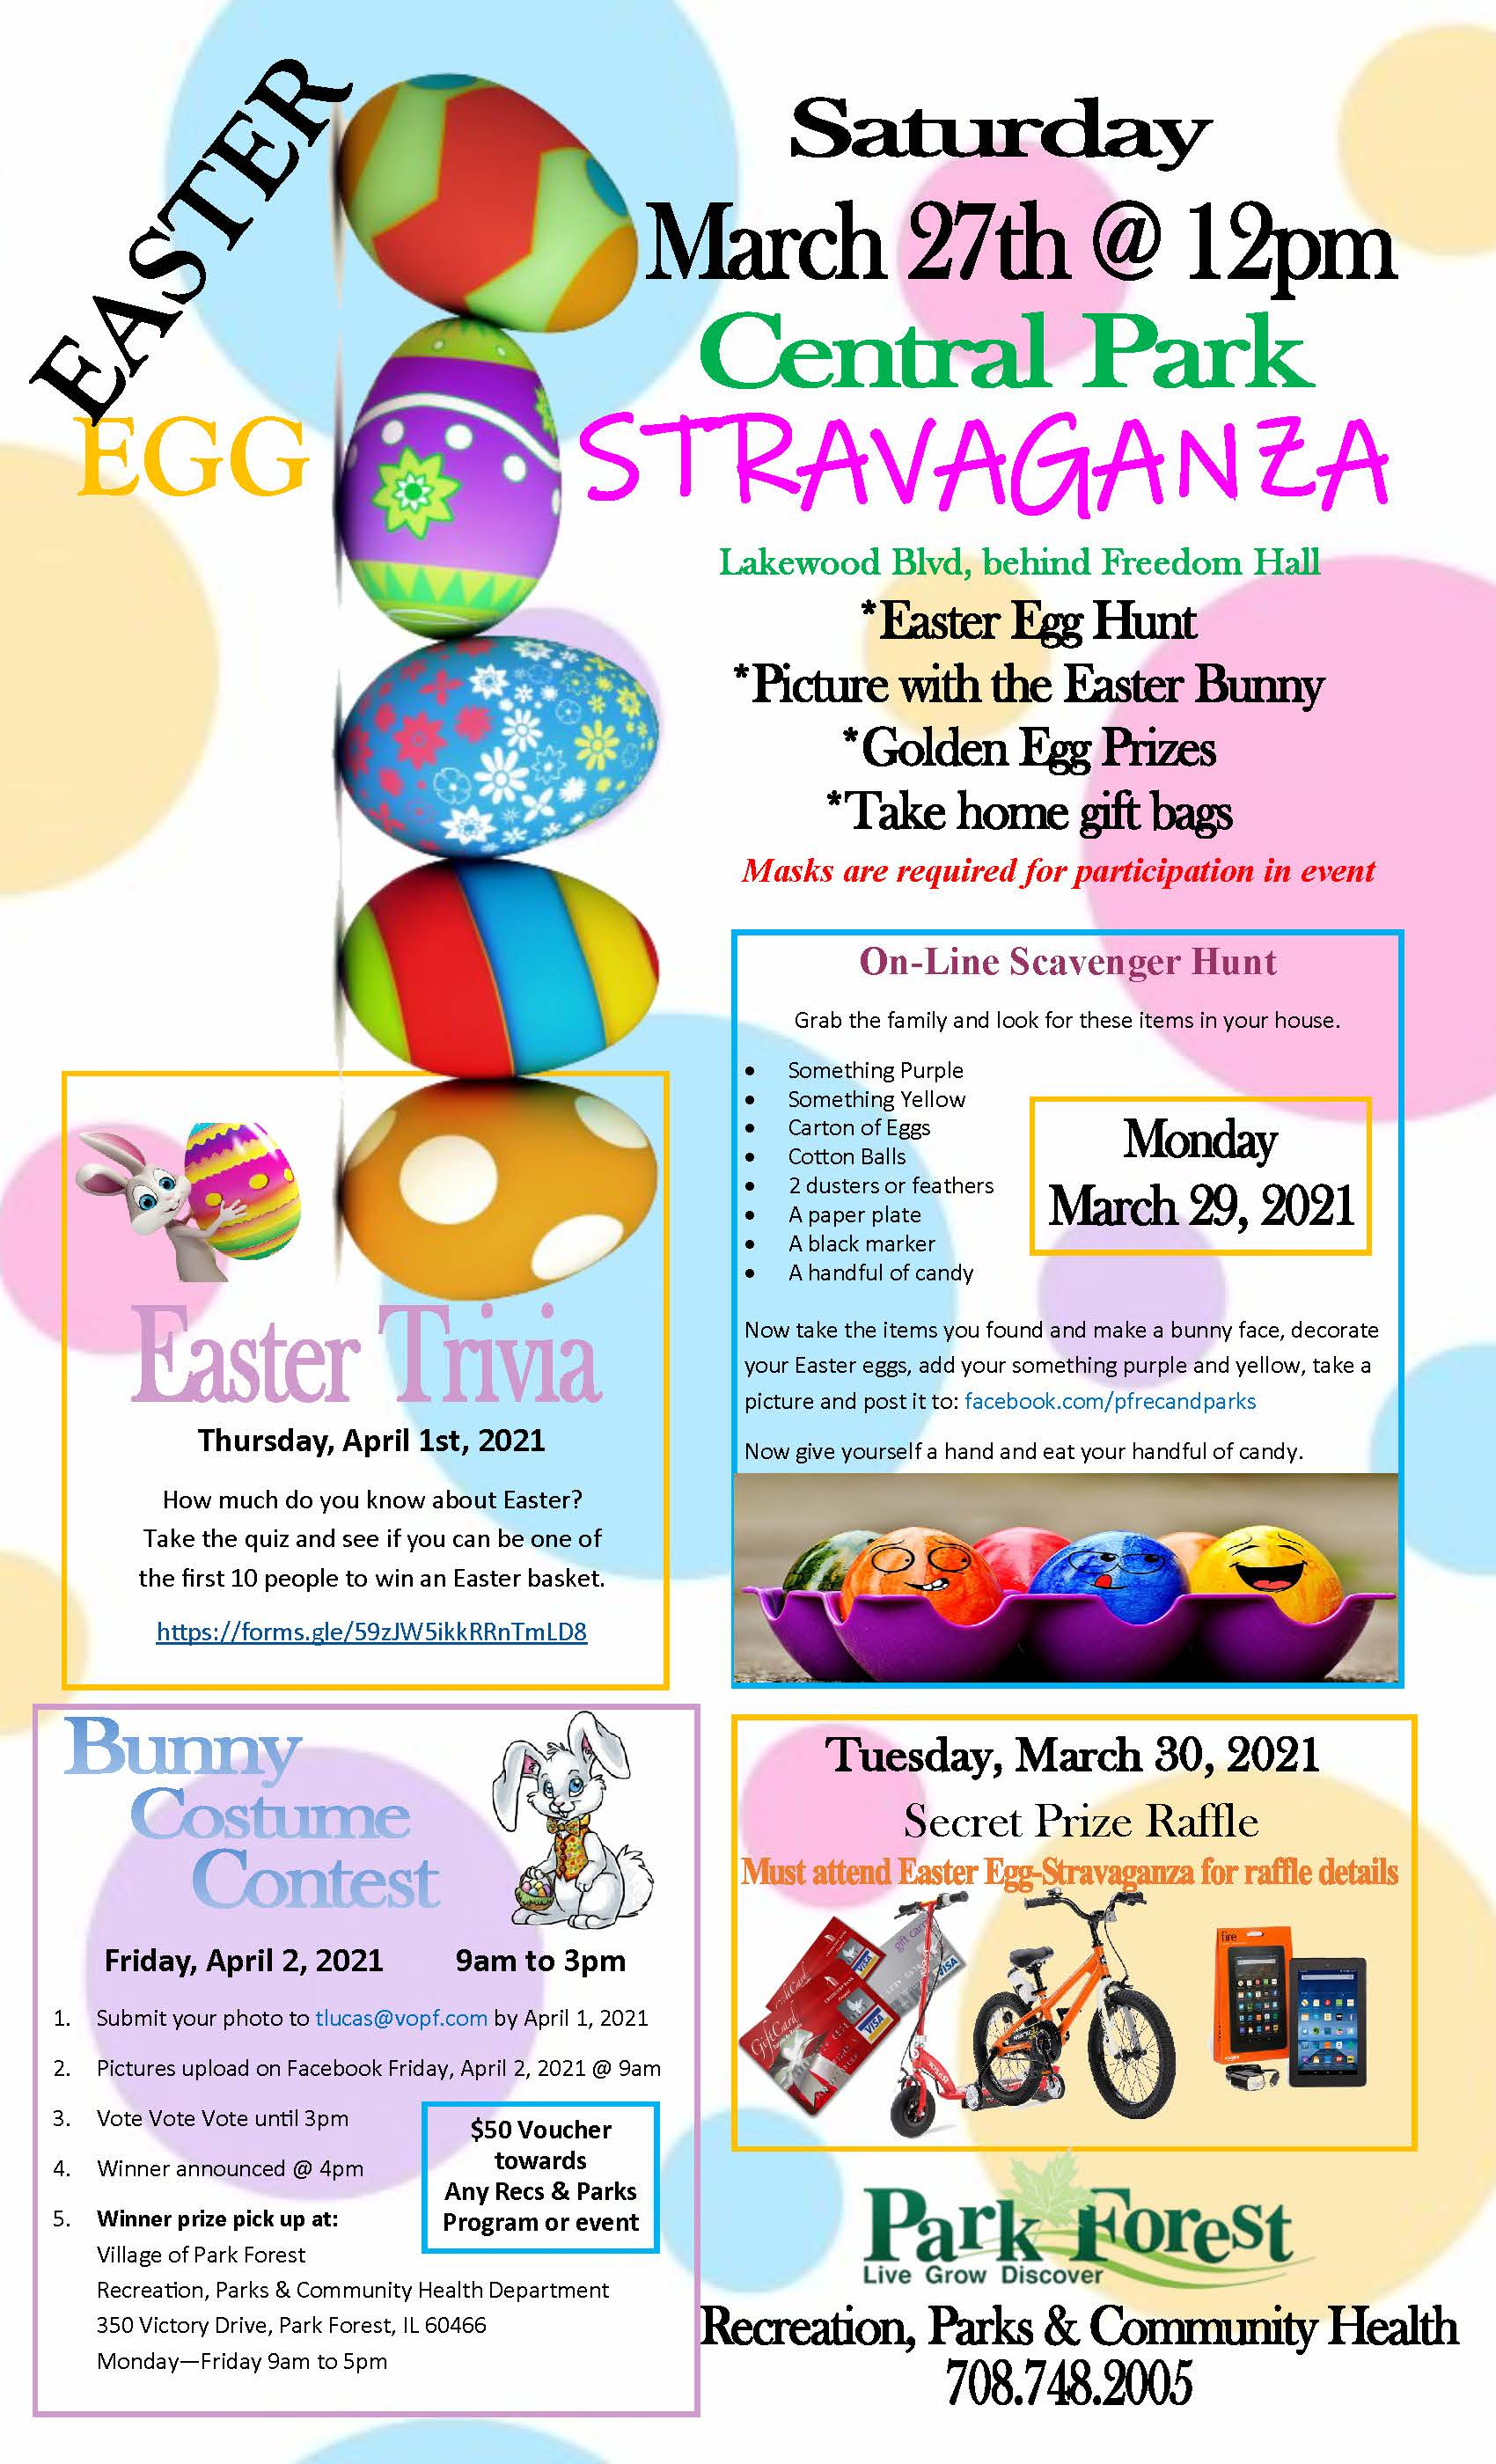 2021 Easter Egg_stravaganza Flyer 3_no business facts.pub